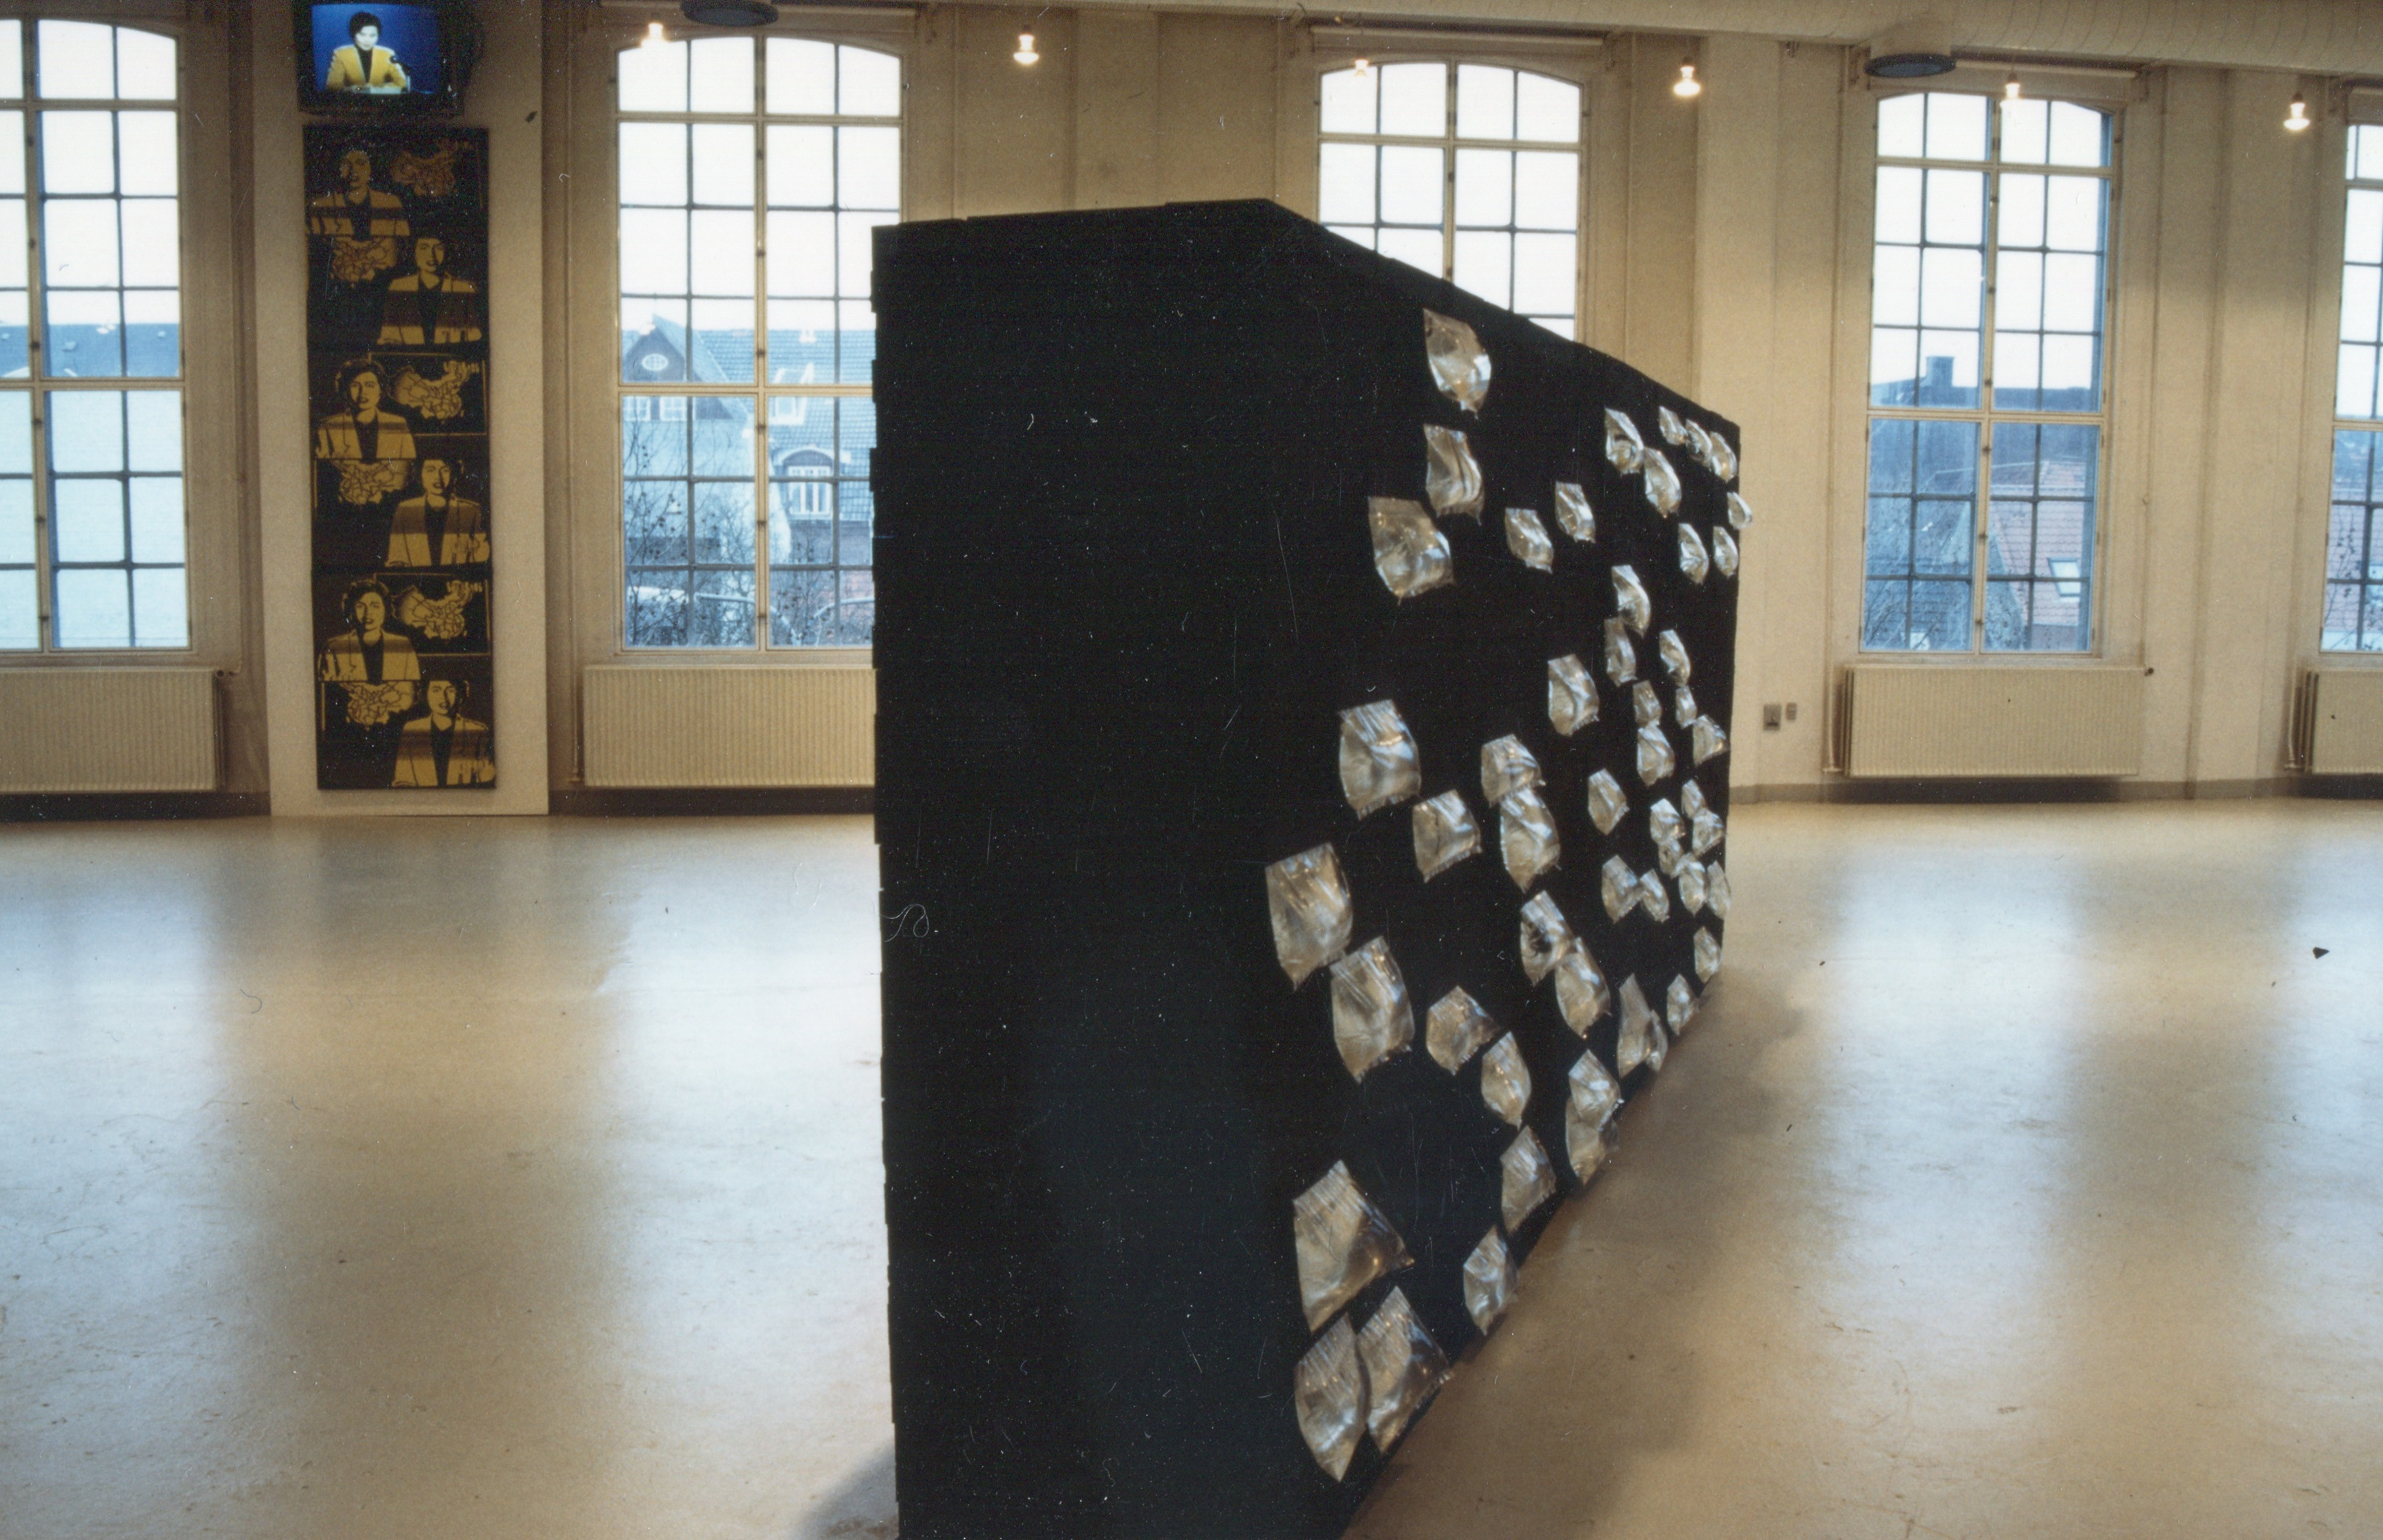 The Wall Itself (Exhibition View)